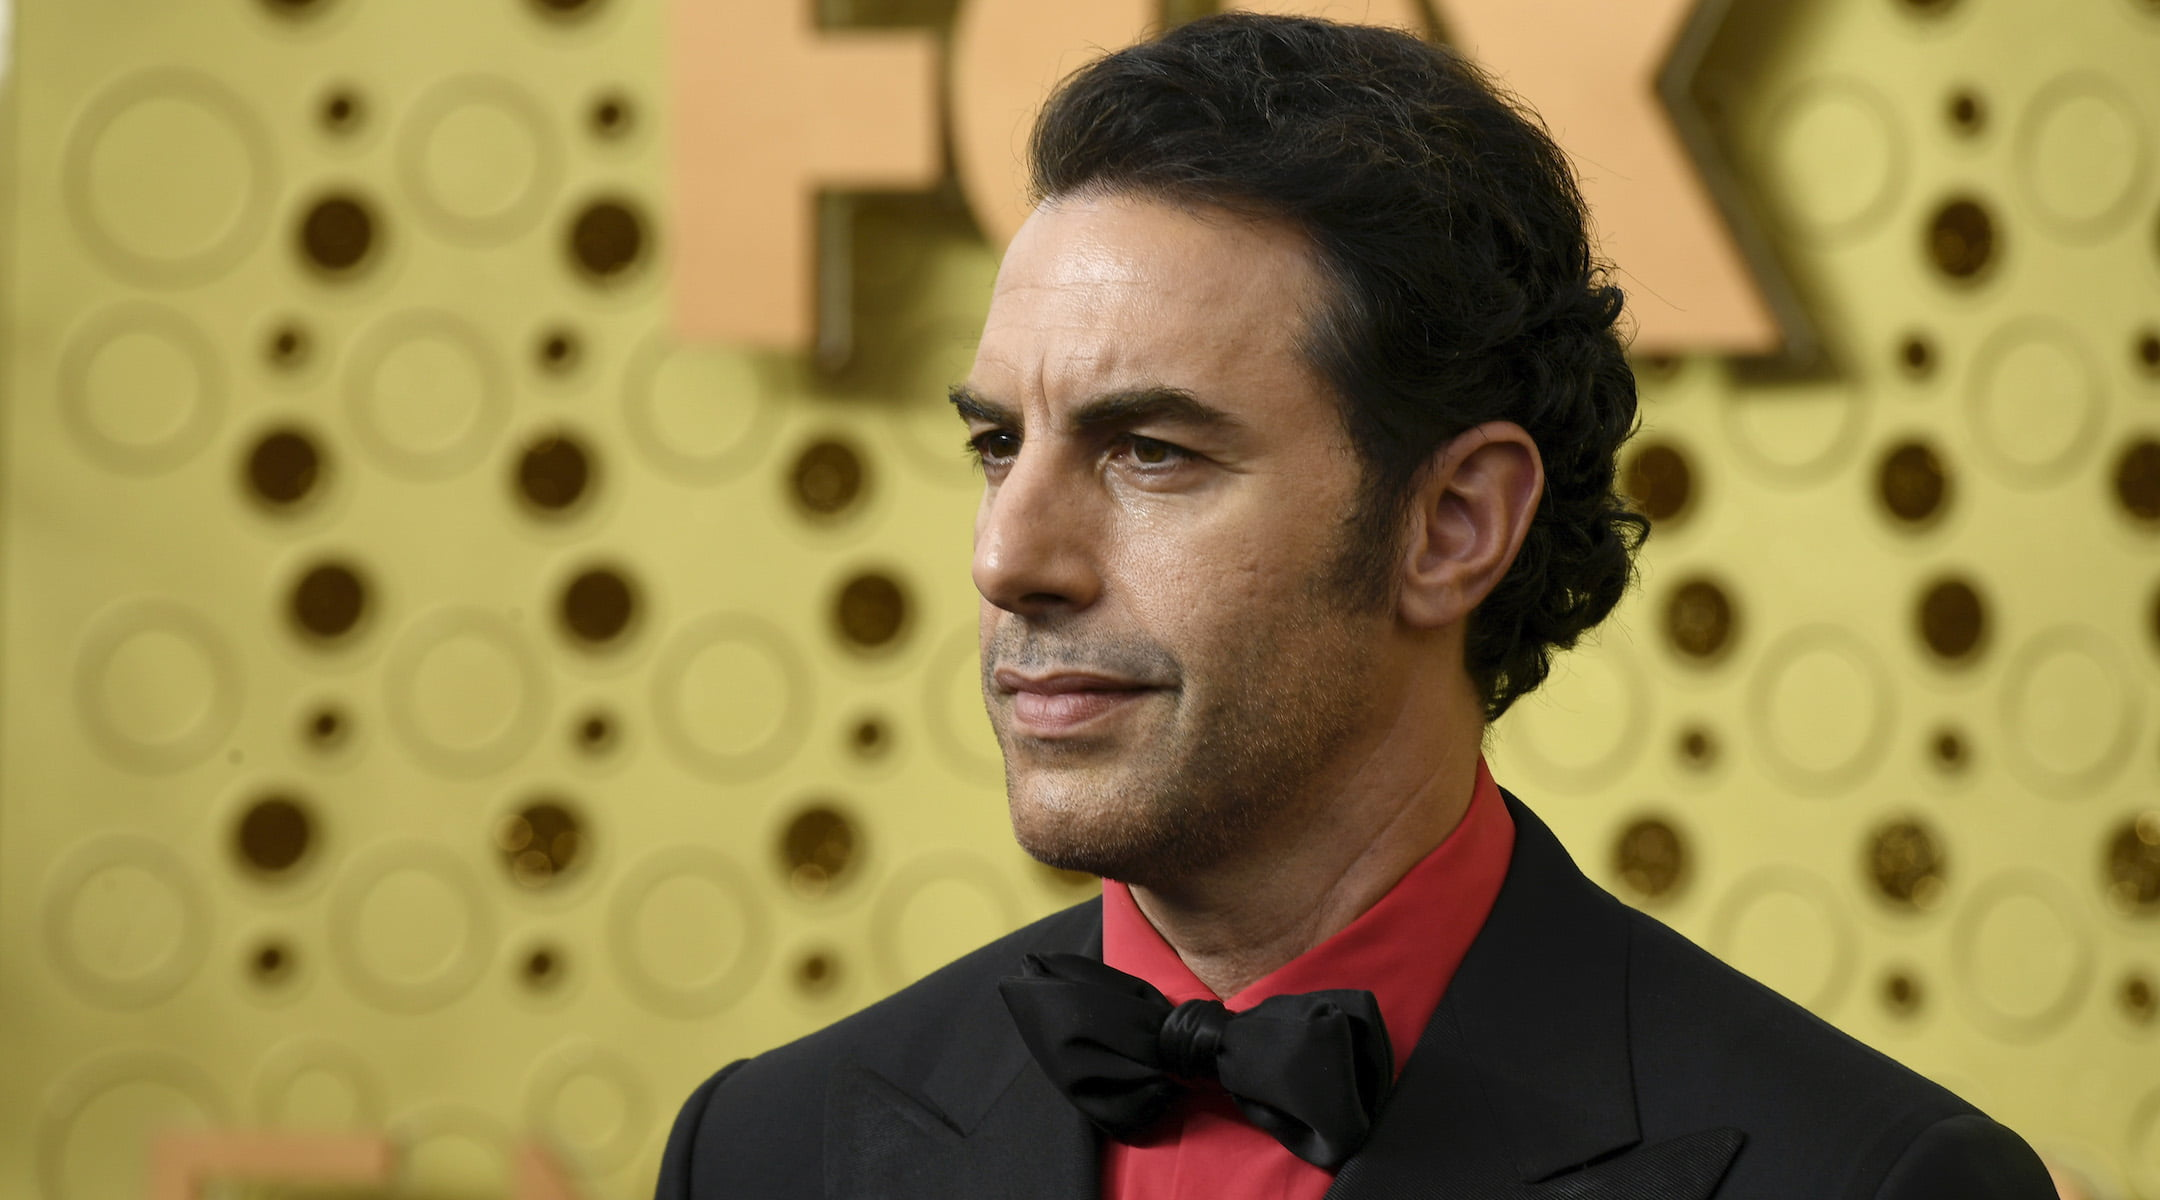 LOS ANGELES, CALIFORNIA - SEPTEMBER 22: Sacha Baron Cohen attends the 71st Emmy Awards at Microsoft Theater on September 22, 2019 in Los Angeles, California. (Photo by Frazer Harrison/Getty Images)